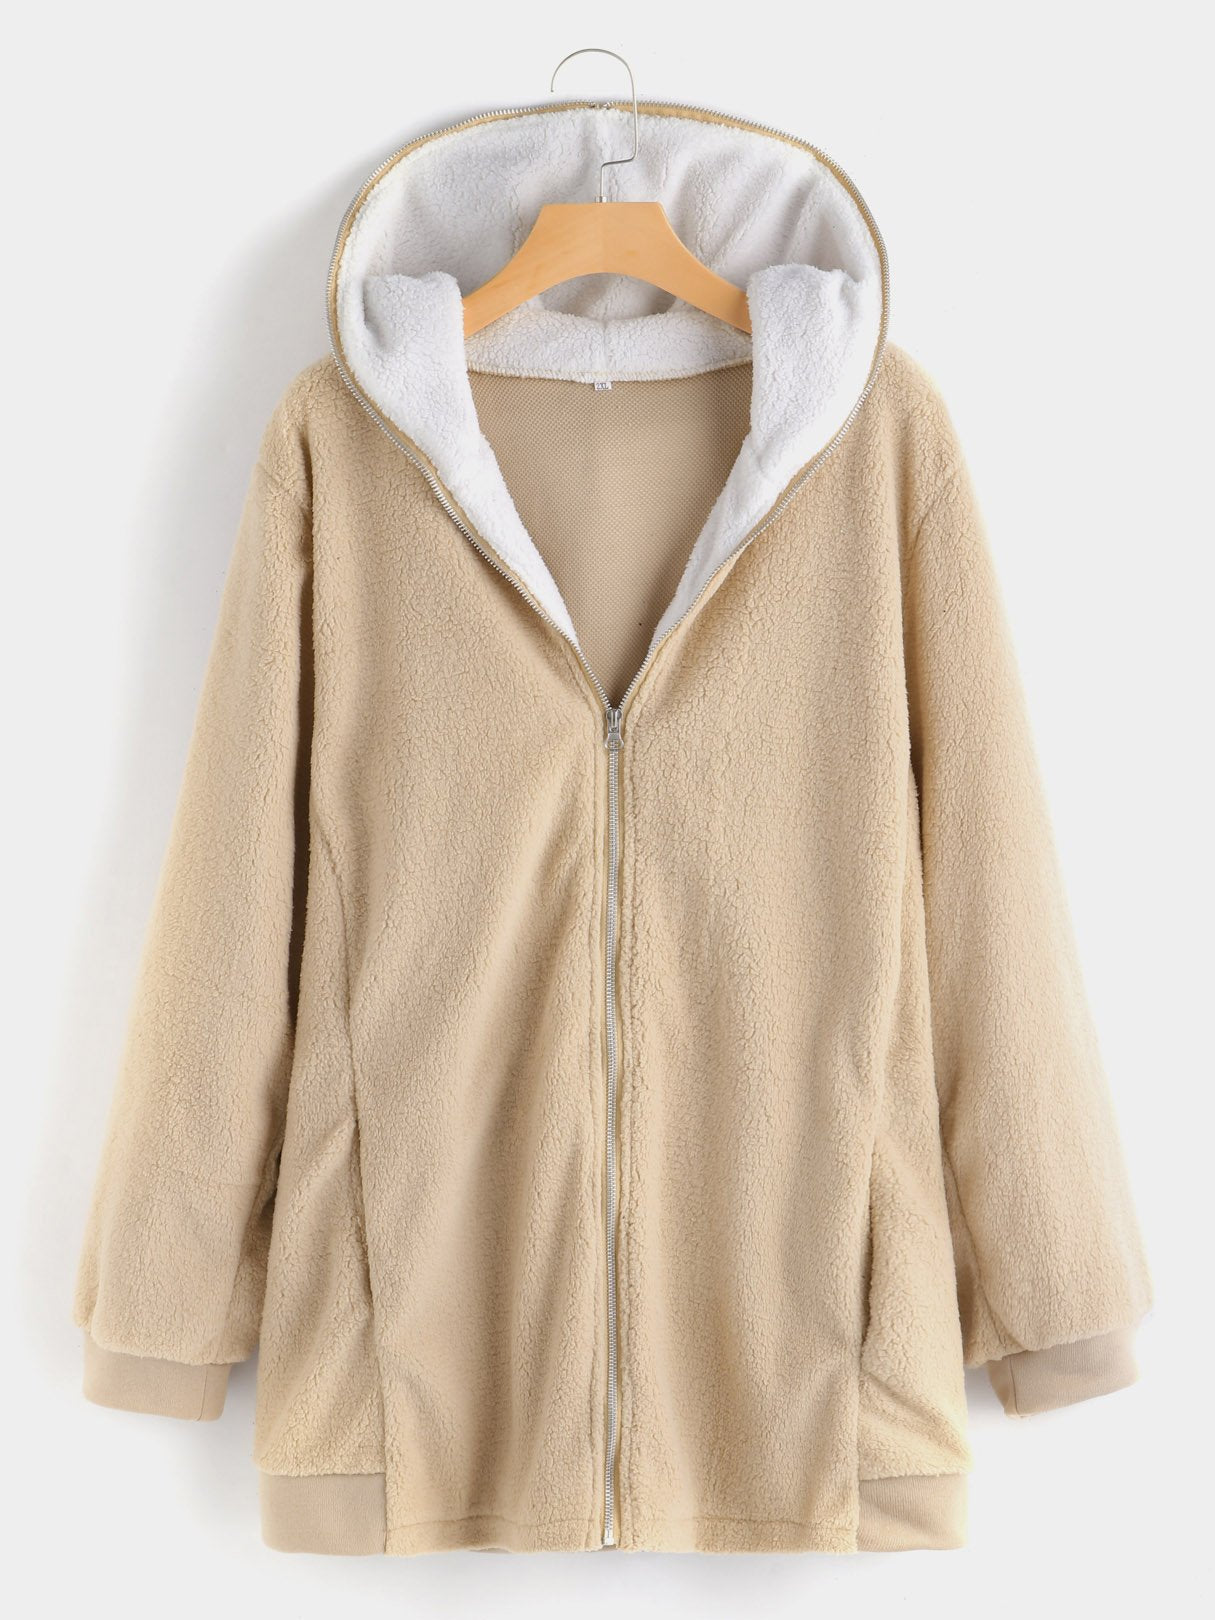 Plus Size Coats  Jackets